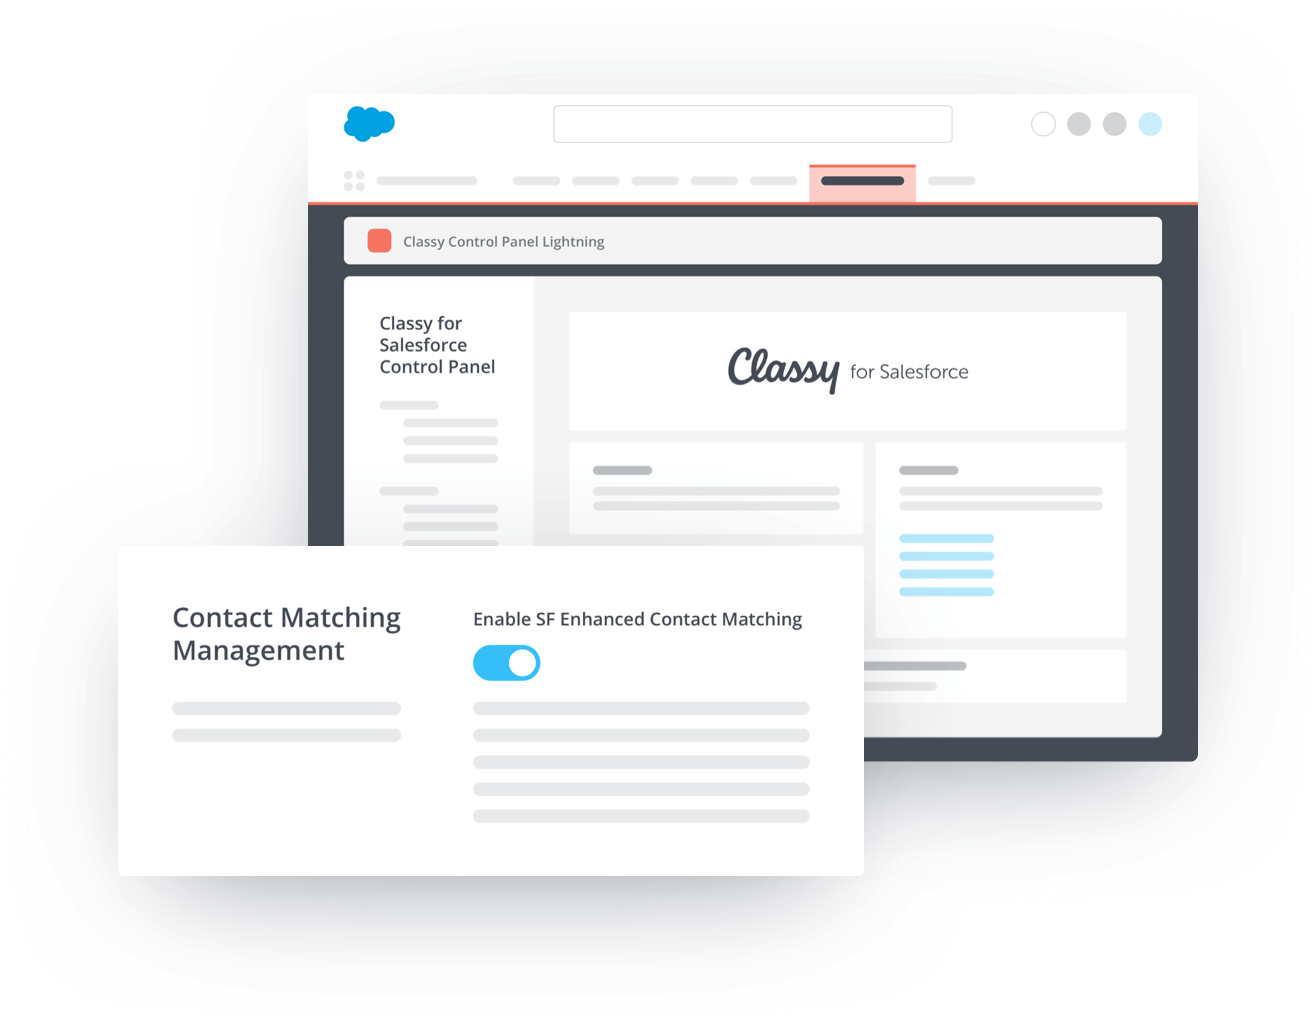 Example of Classy for Salesforce control panel with Contact Matching Management